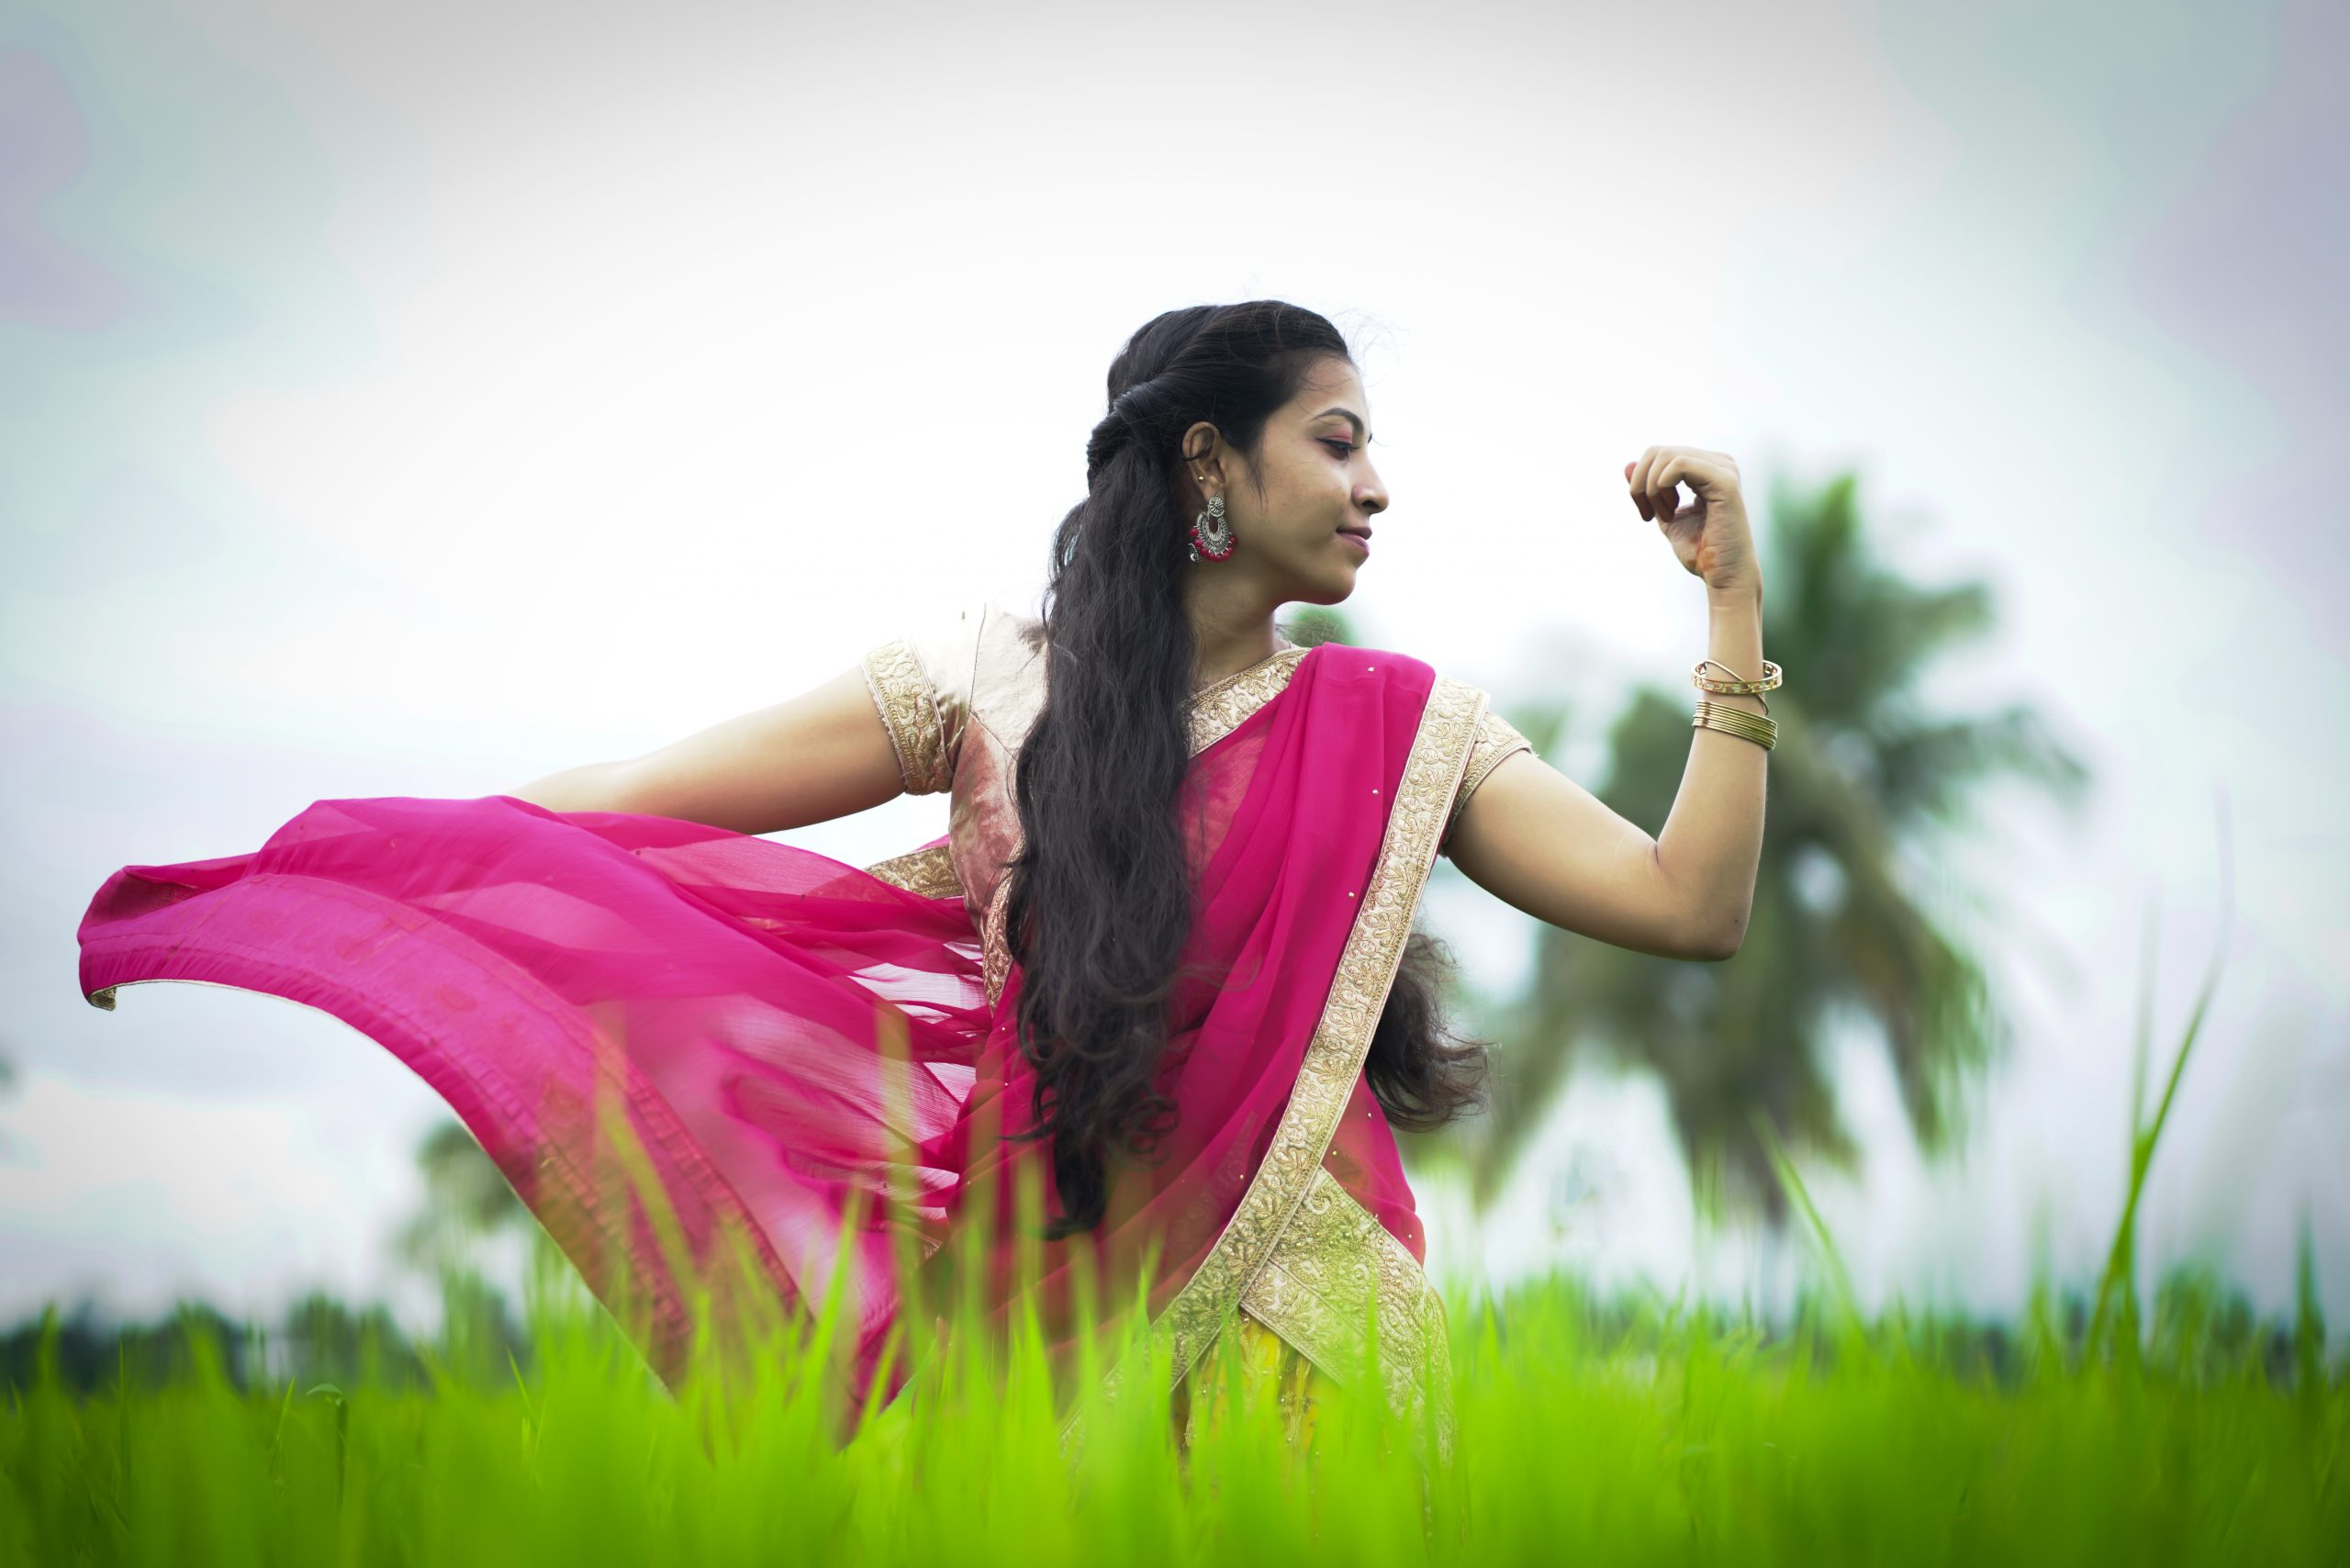 A Indian girl dancing in fields